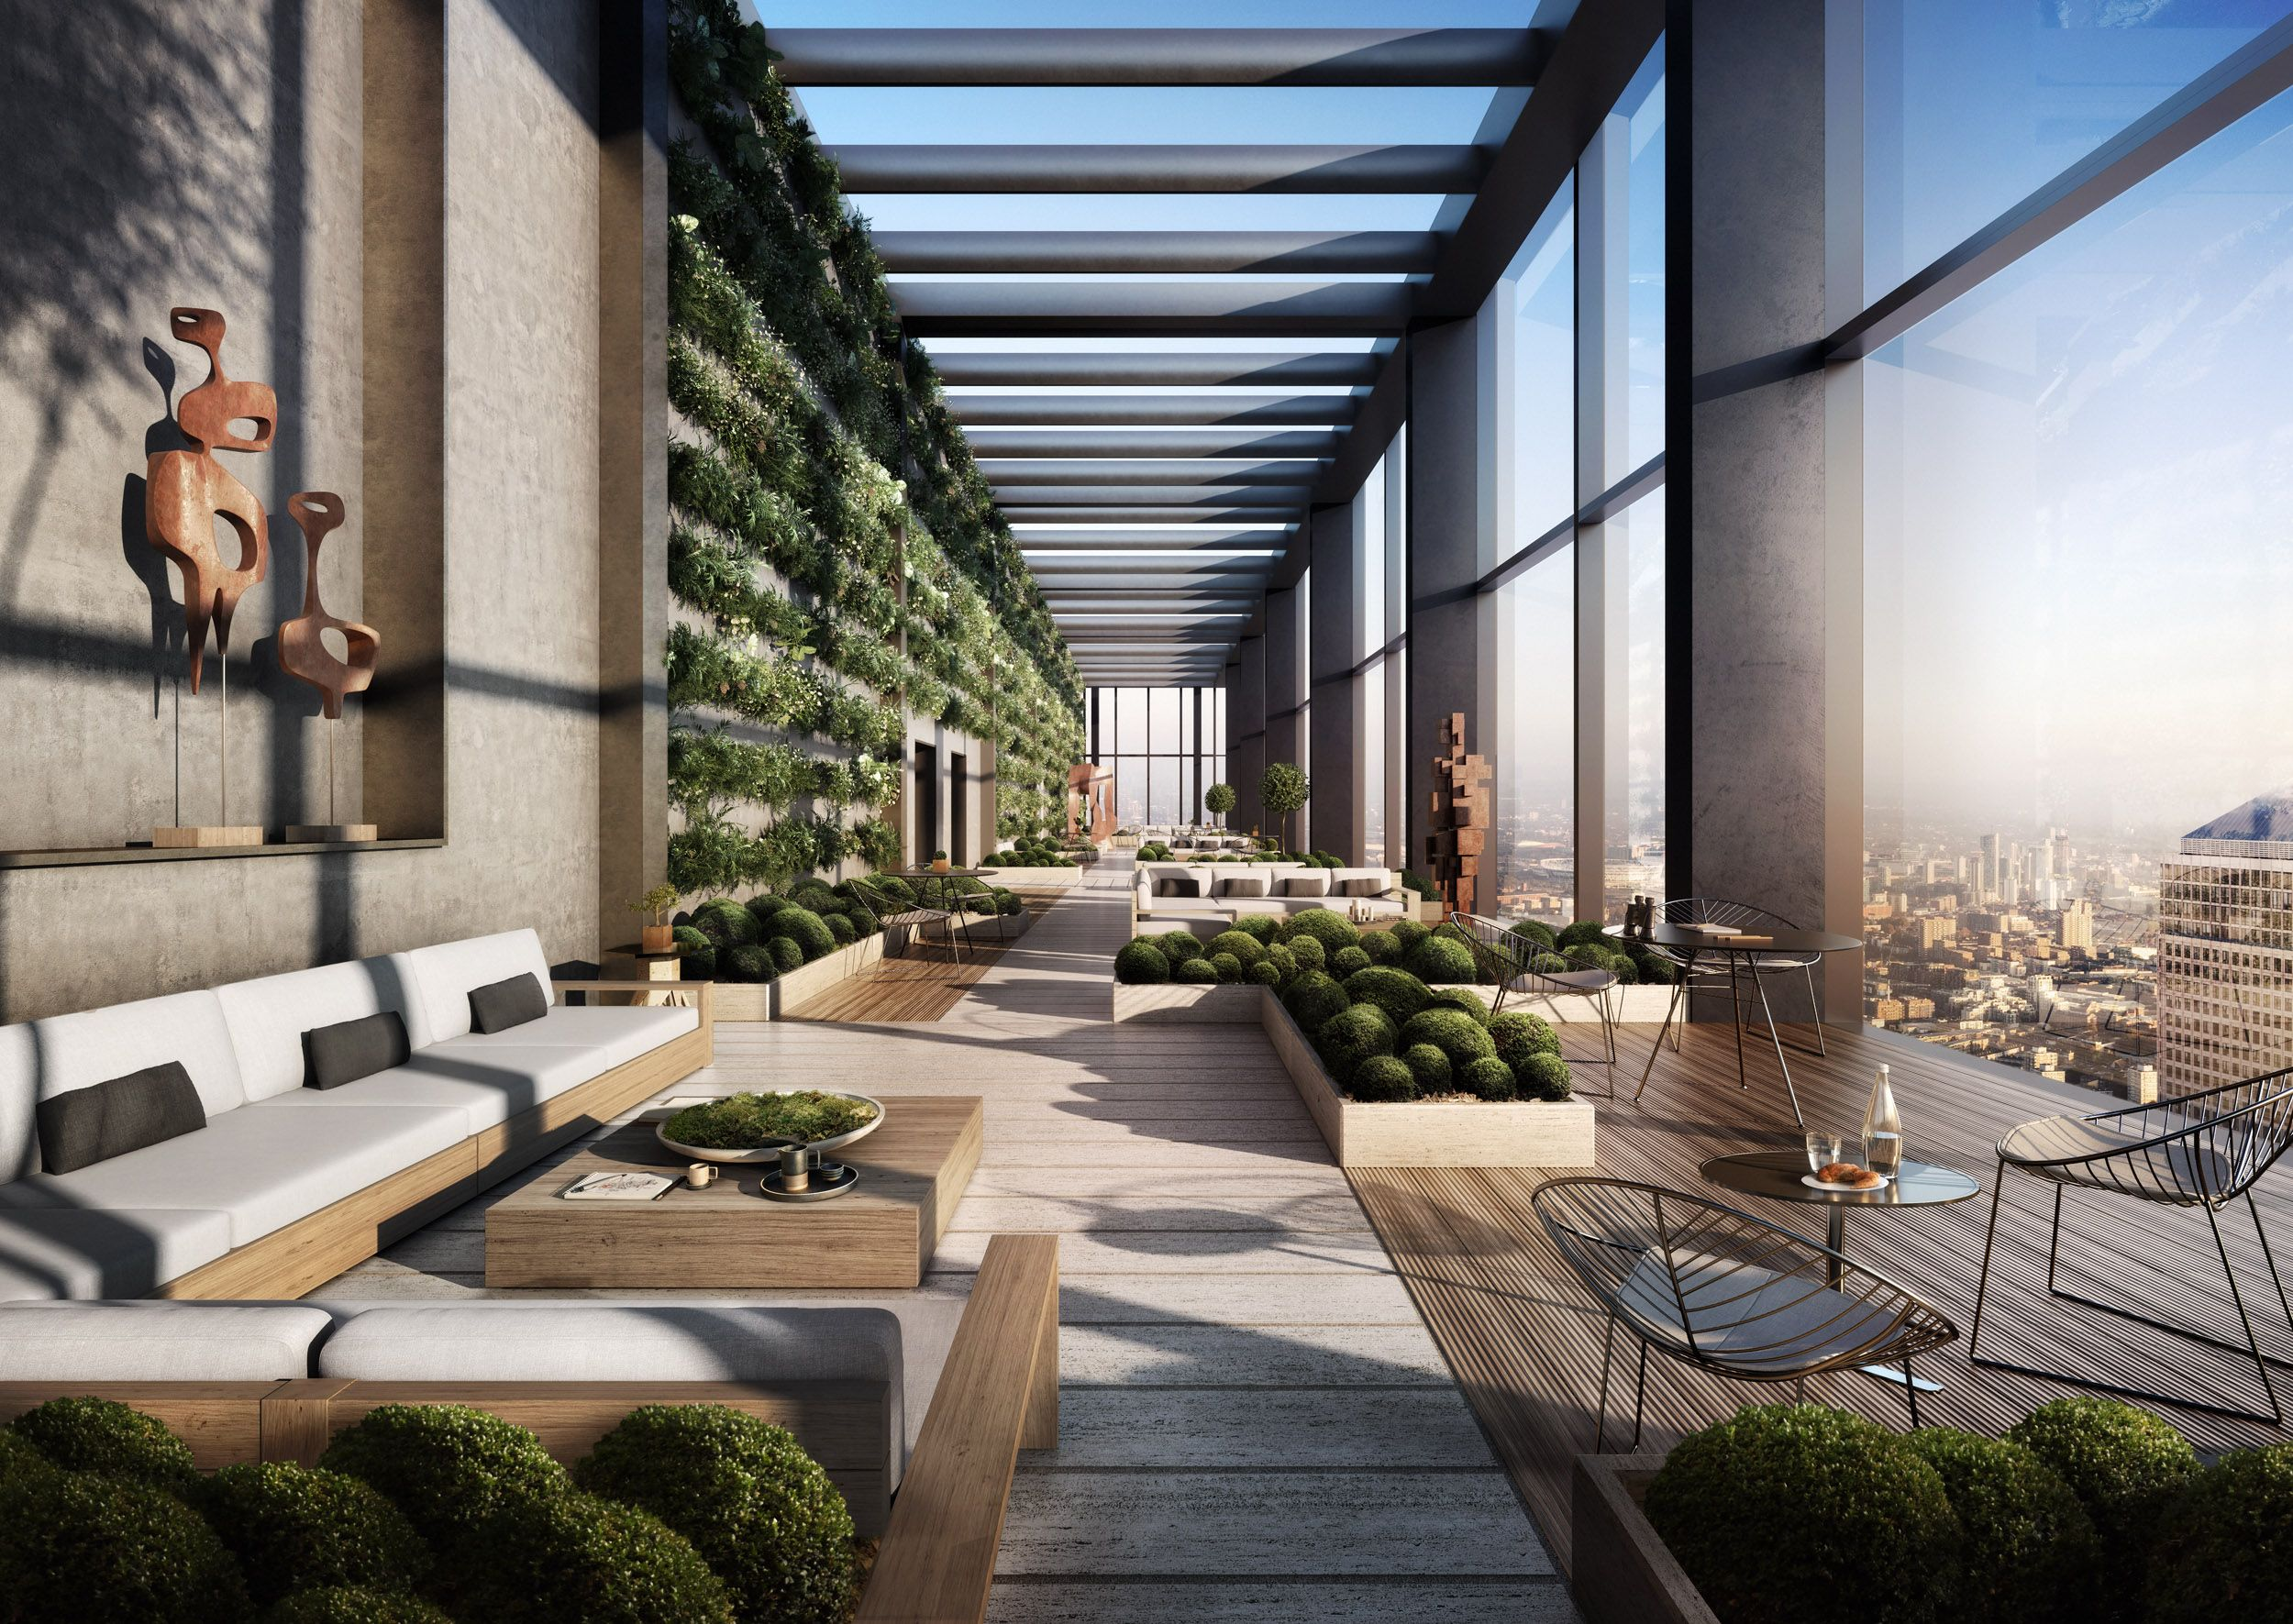 Incredible Roof Terrace At Landmark Pinnacle In Canary Wharf Londonlifestyle Rooftop Restaurant Design Apartment Rooftop Balcony Design